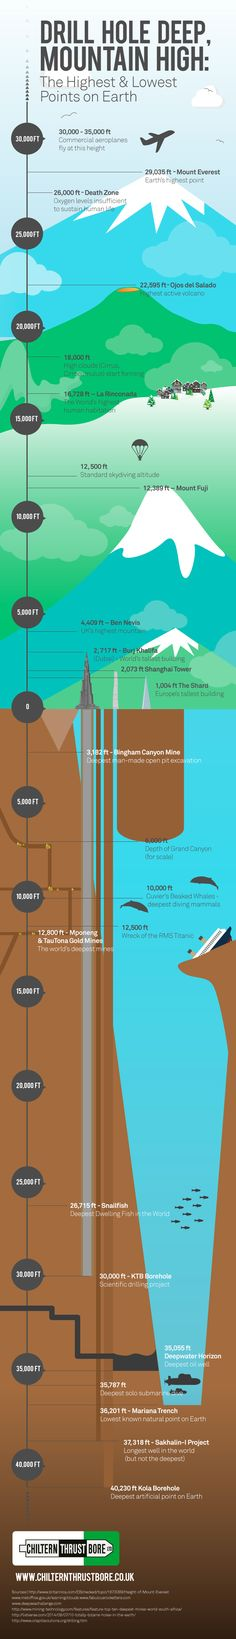 Los puntos más altos y bajos del mundo #infographic / Drill hole deep, mountain high: The highest & lowest points on earth #infographic